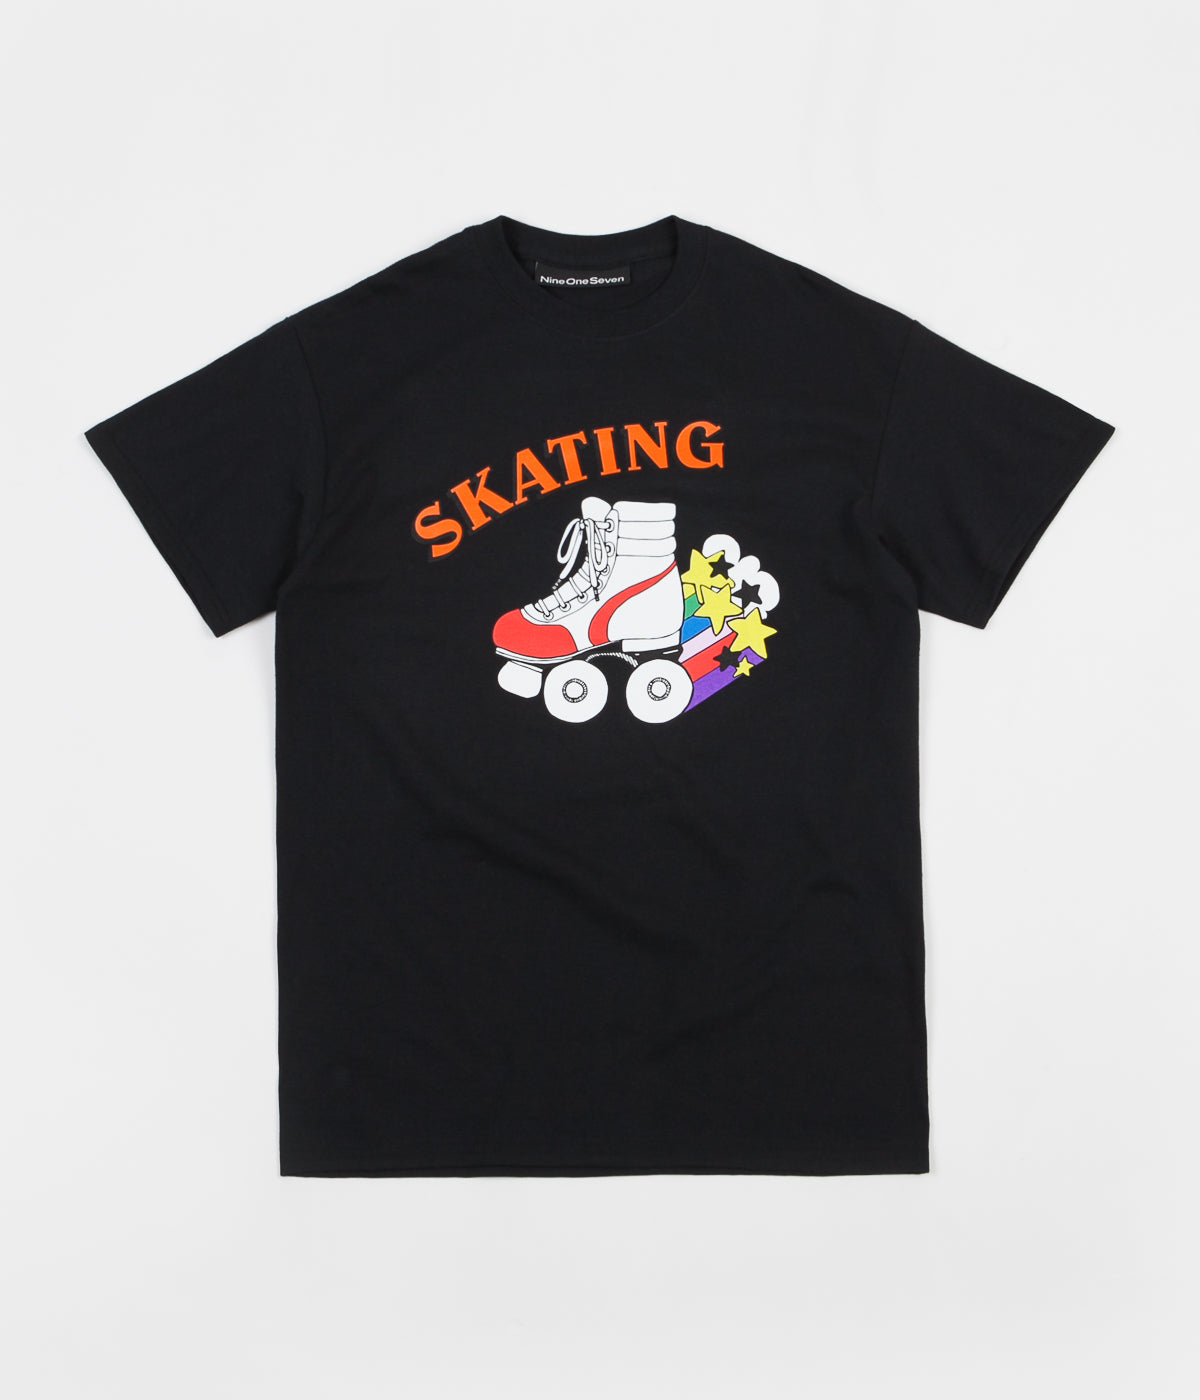 Call Me 917 Skate Or Die T-Shirt - Black